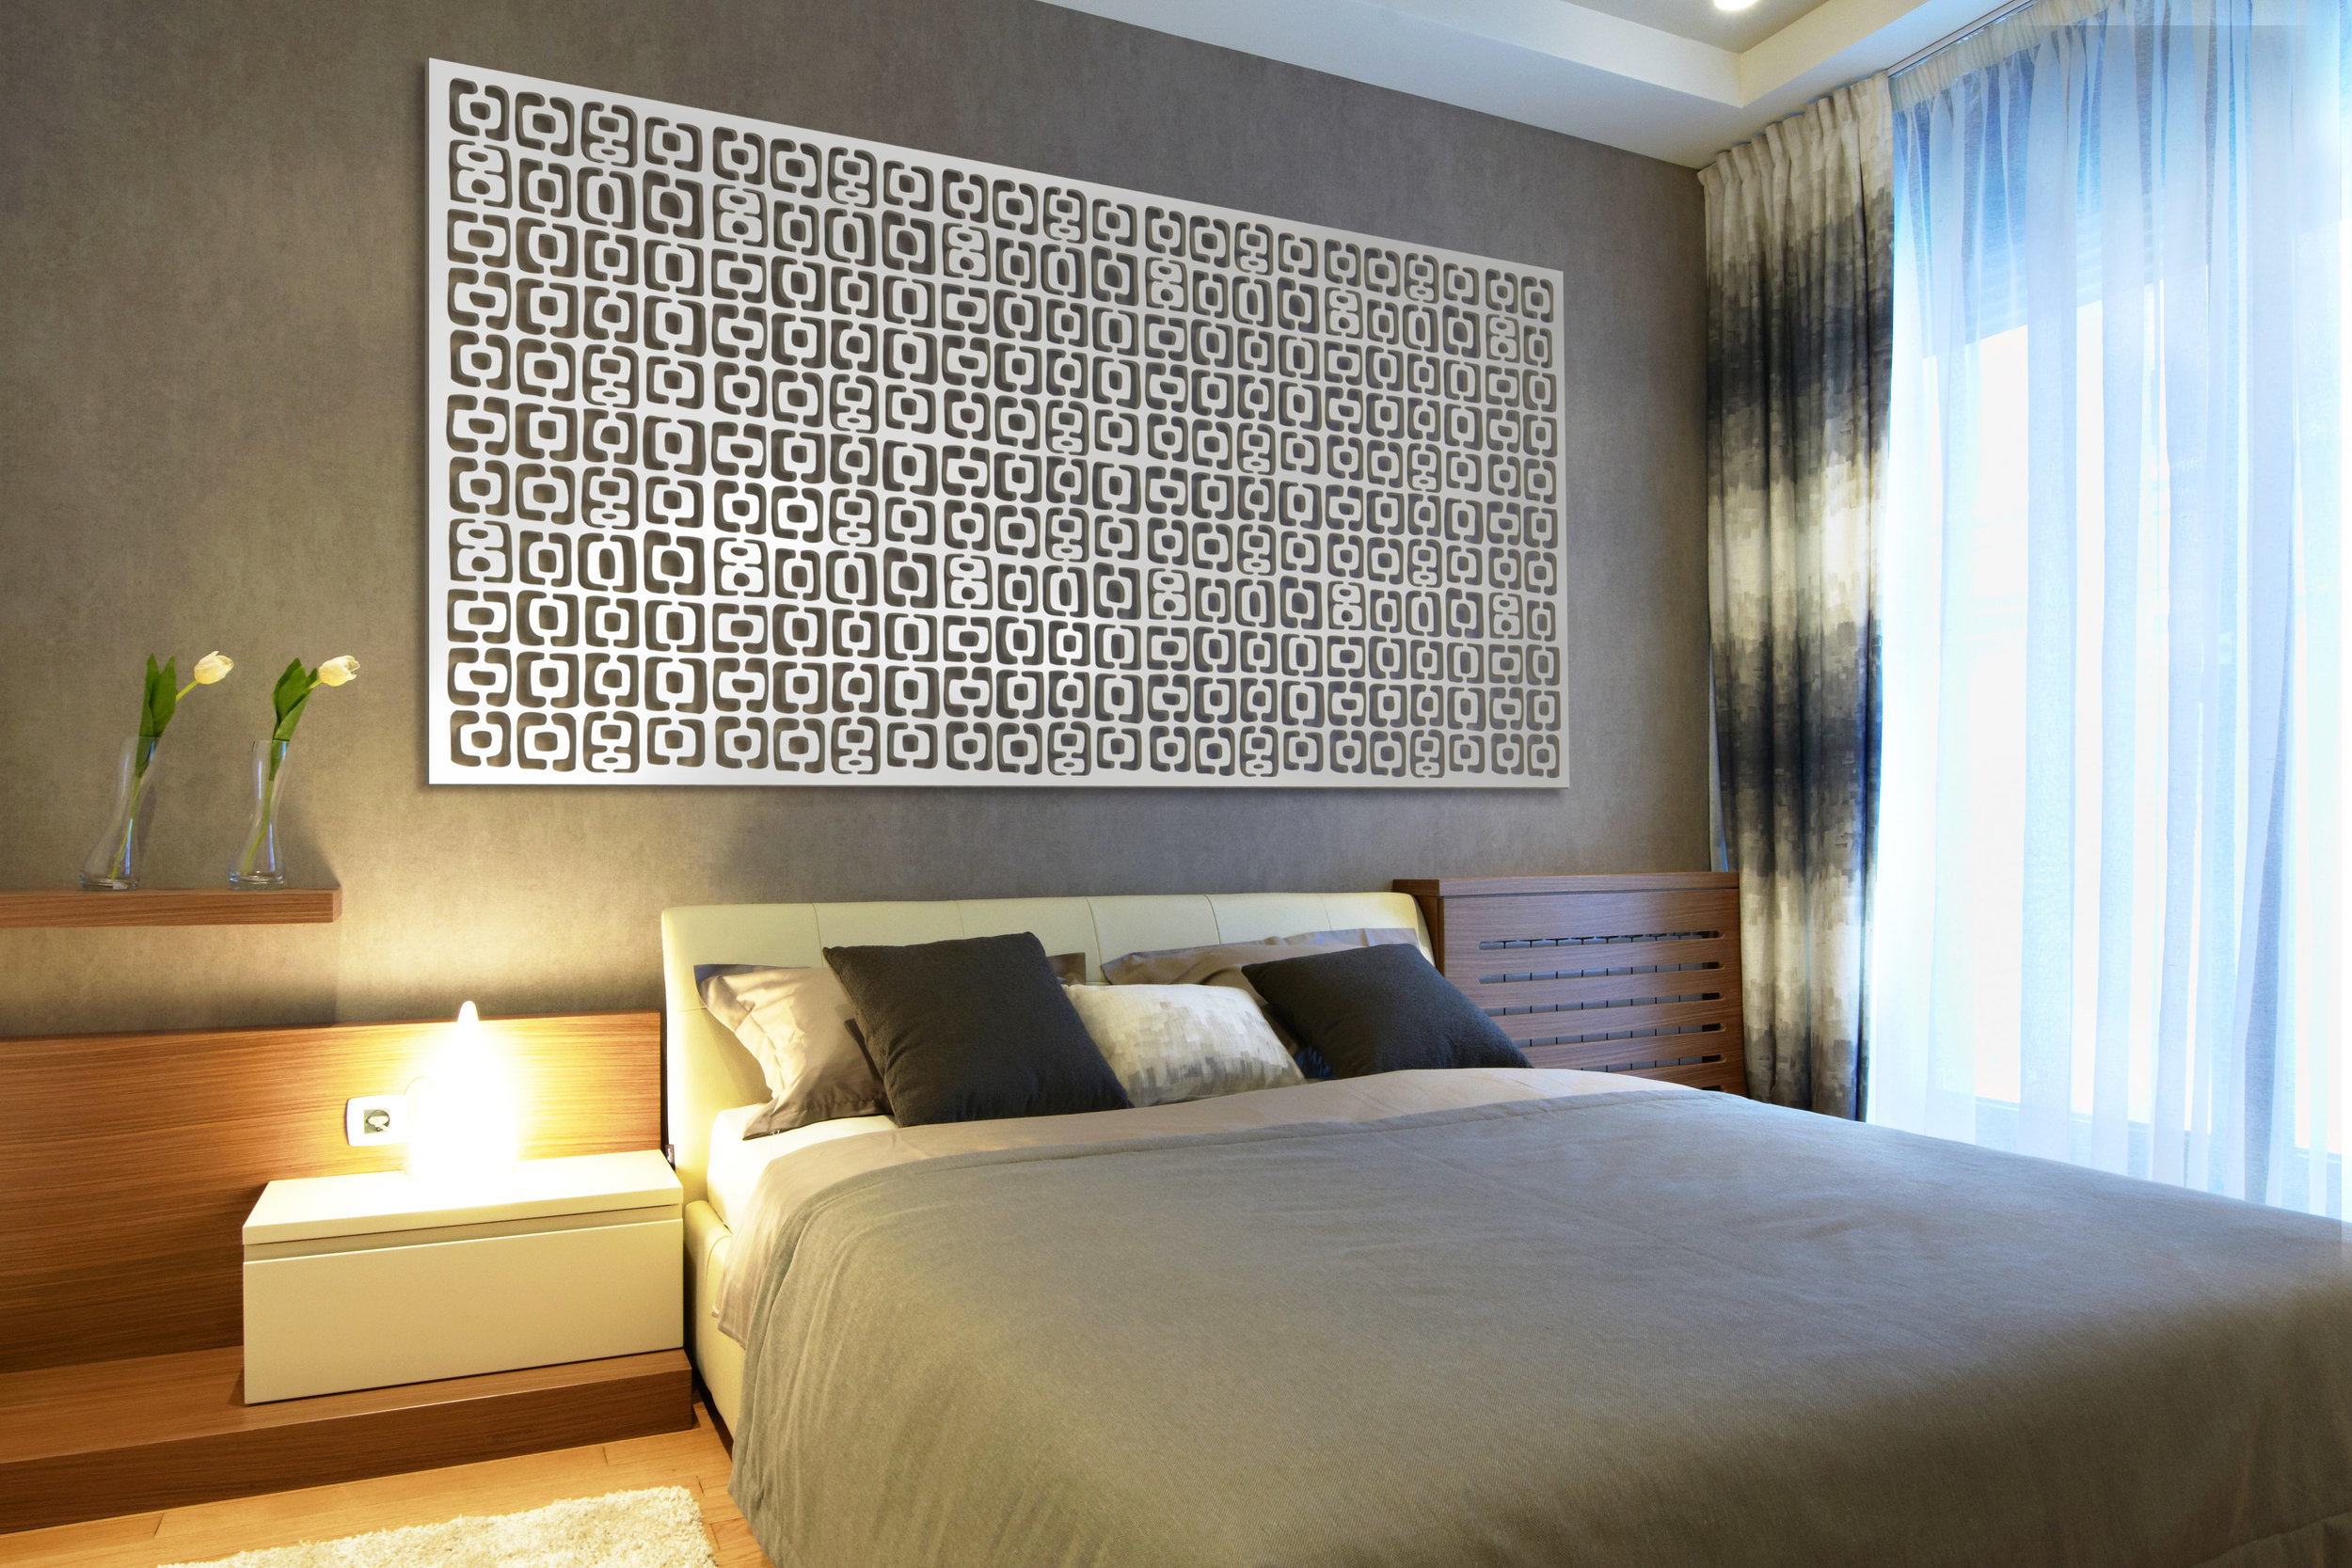 Installation Rendering C   Dallago decorative hotel wall panel - painted